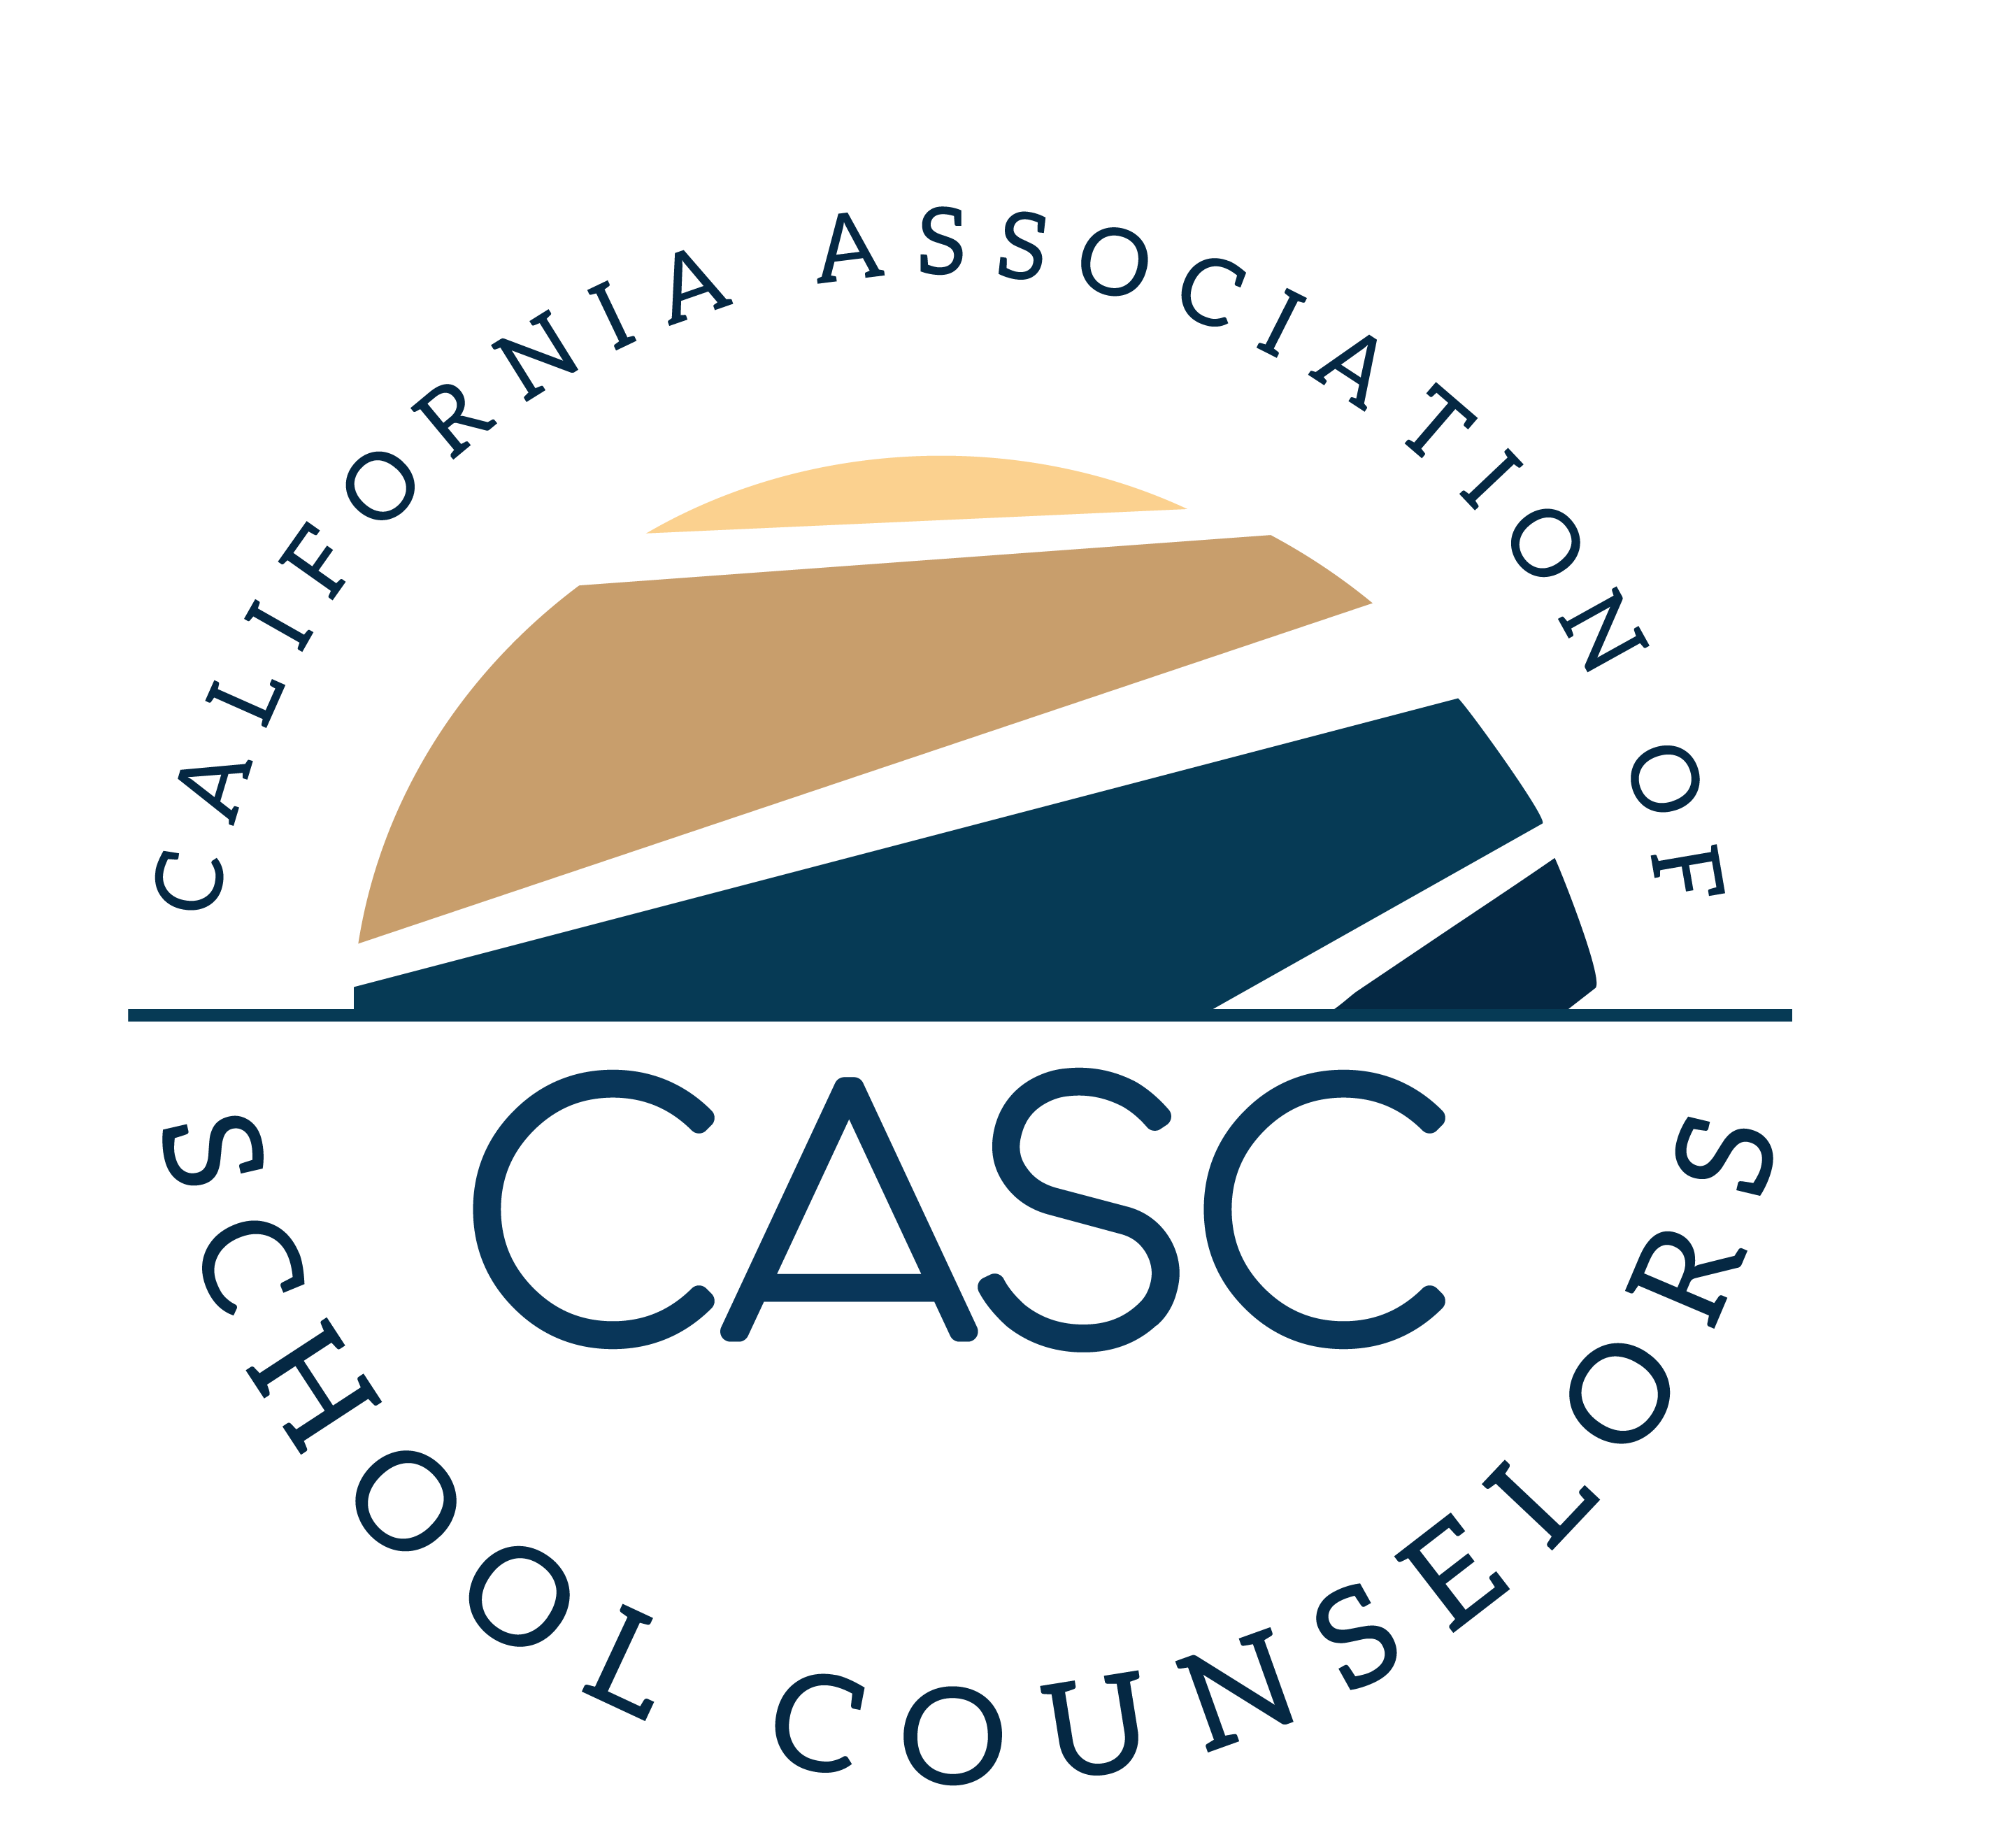 California Association of School Counselors (CASC) logo